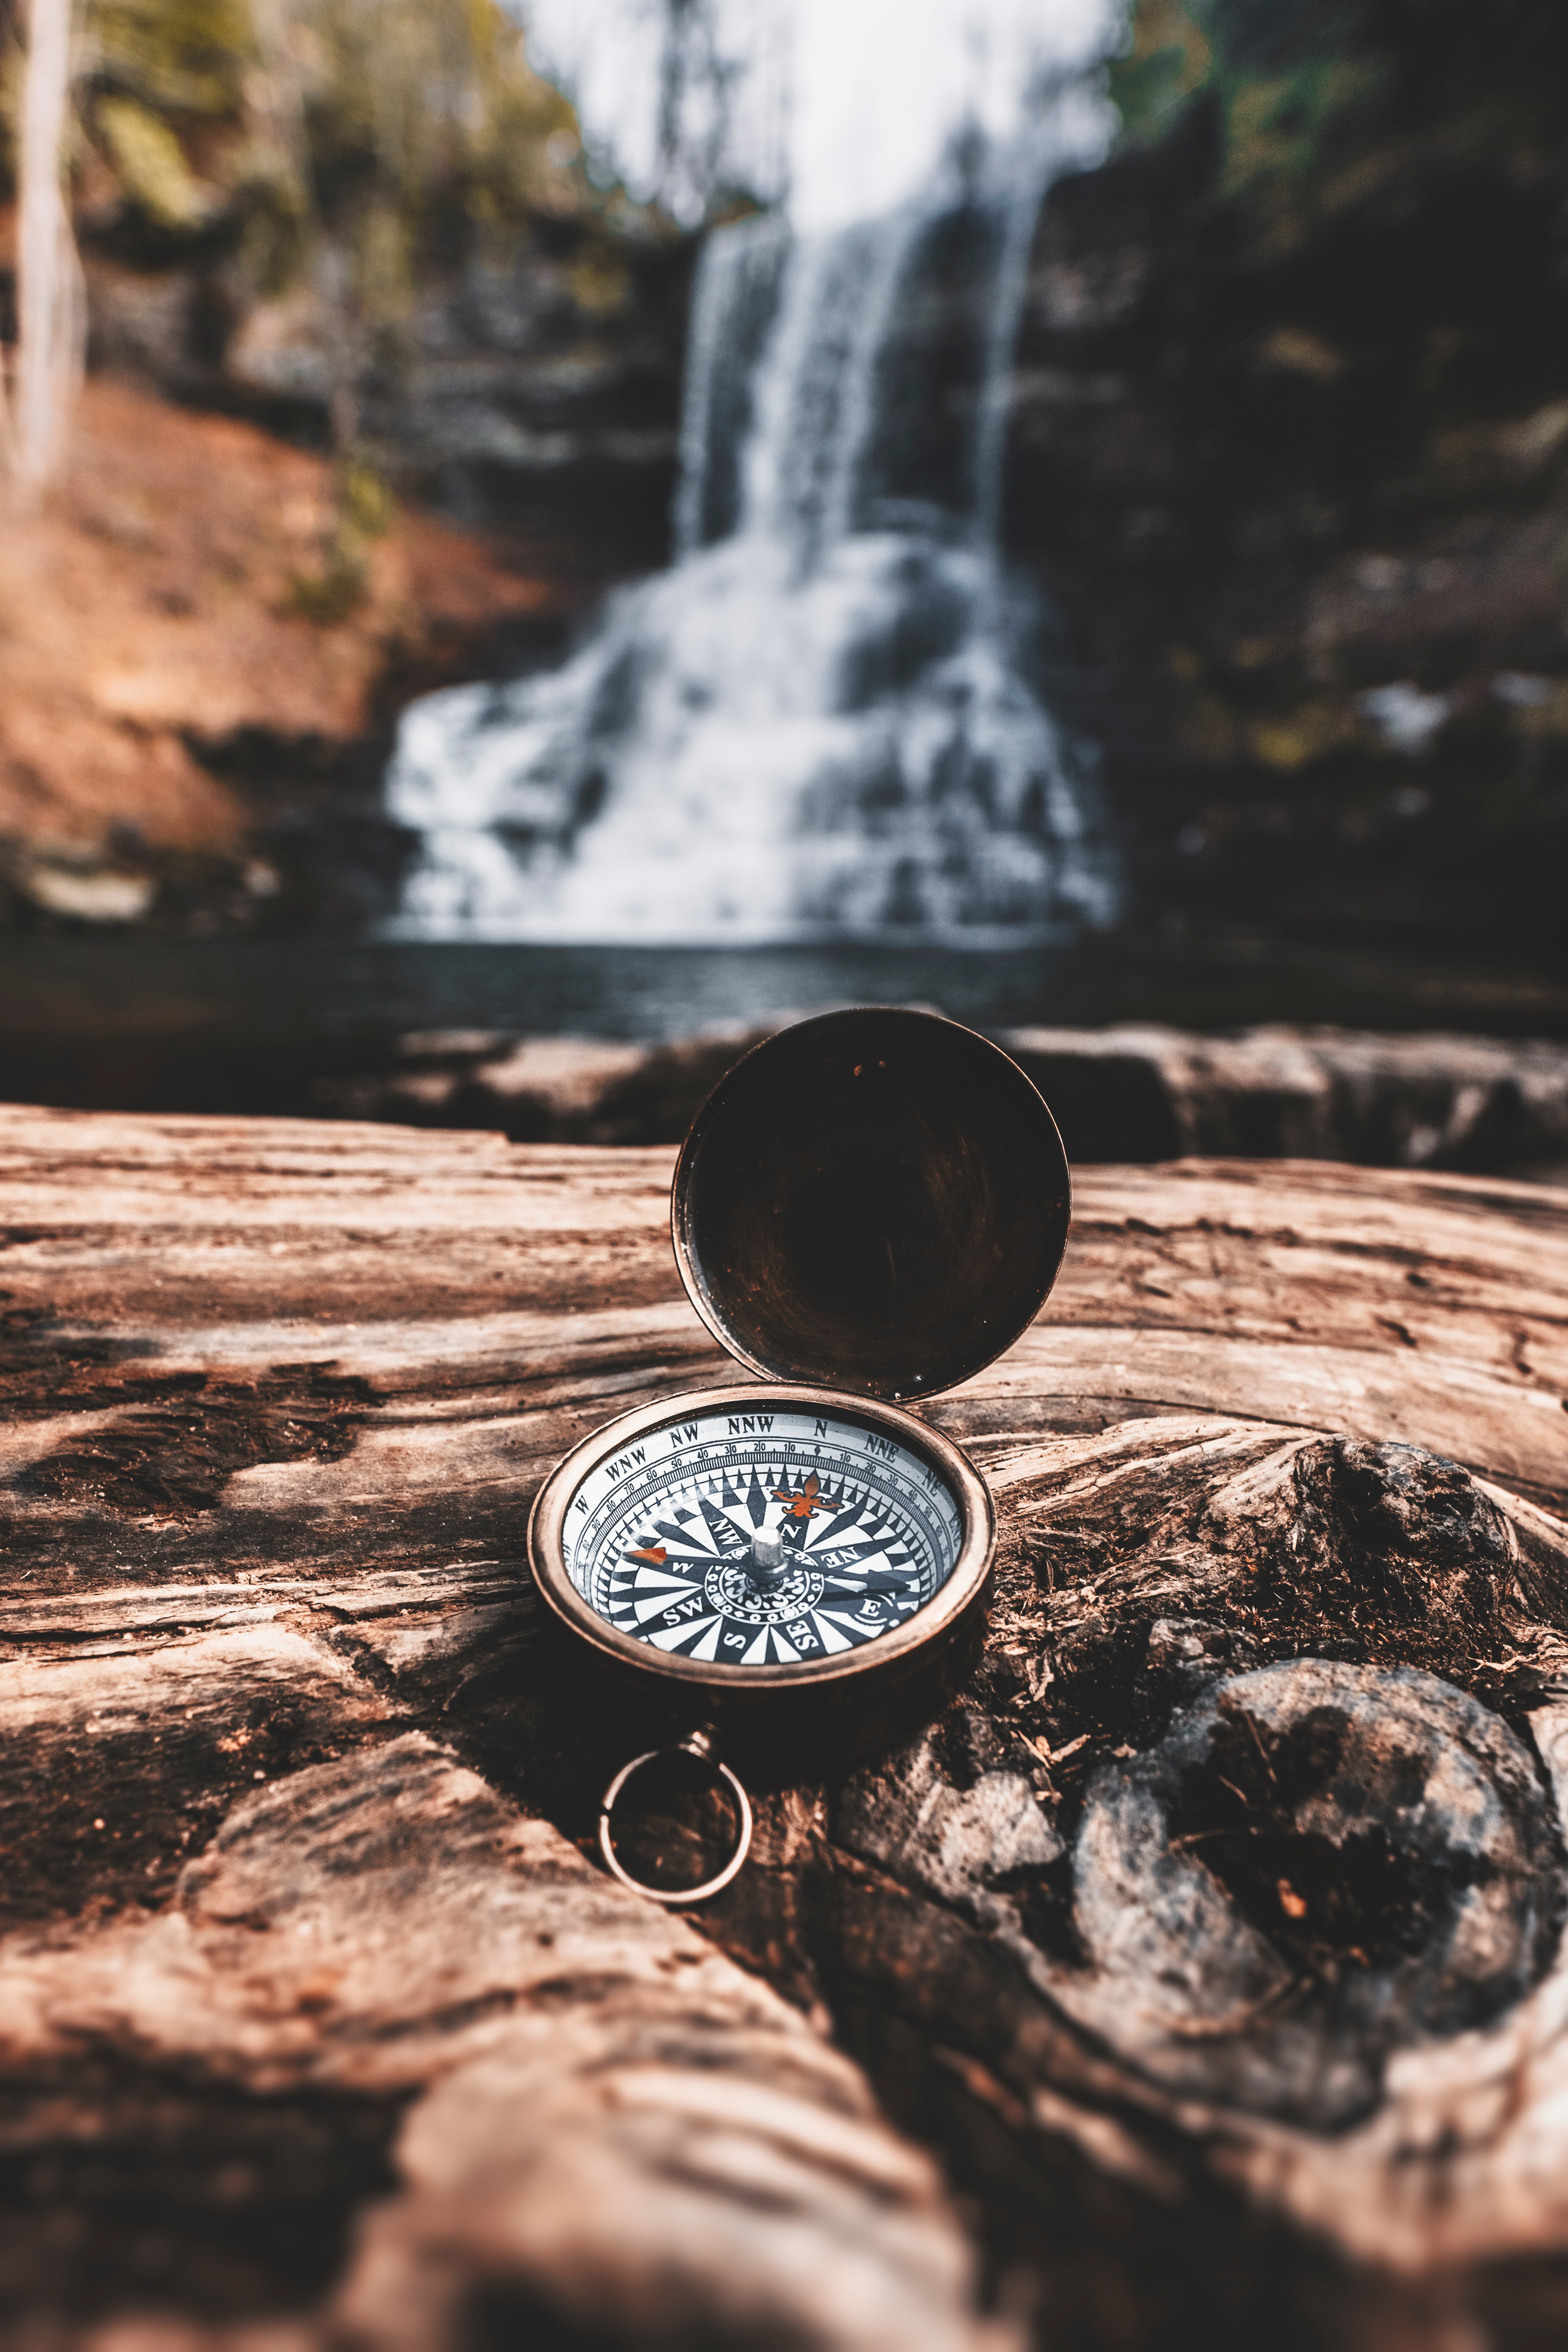 Compass in front of a waterfall - Photo by Bryan Minear on Unsplash